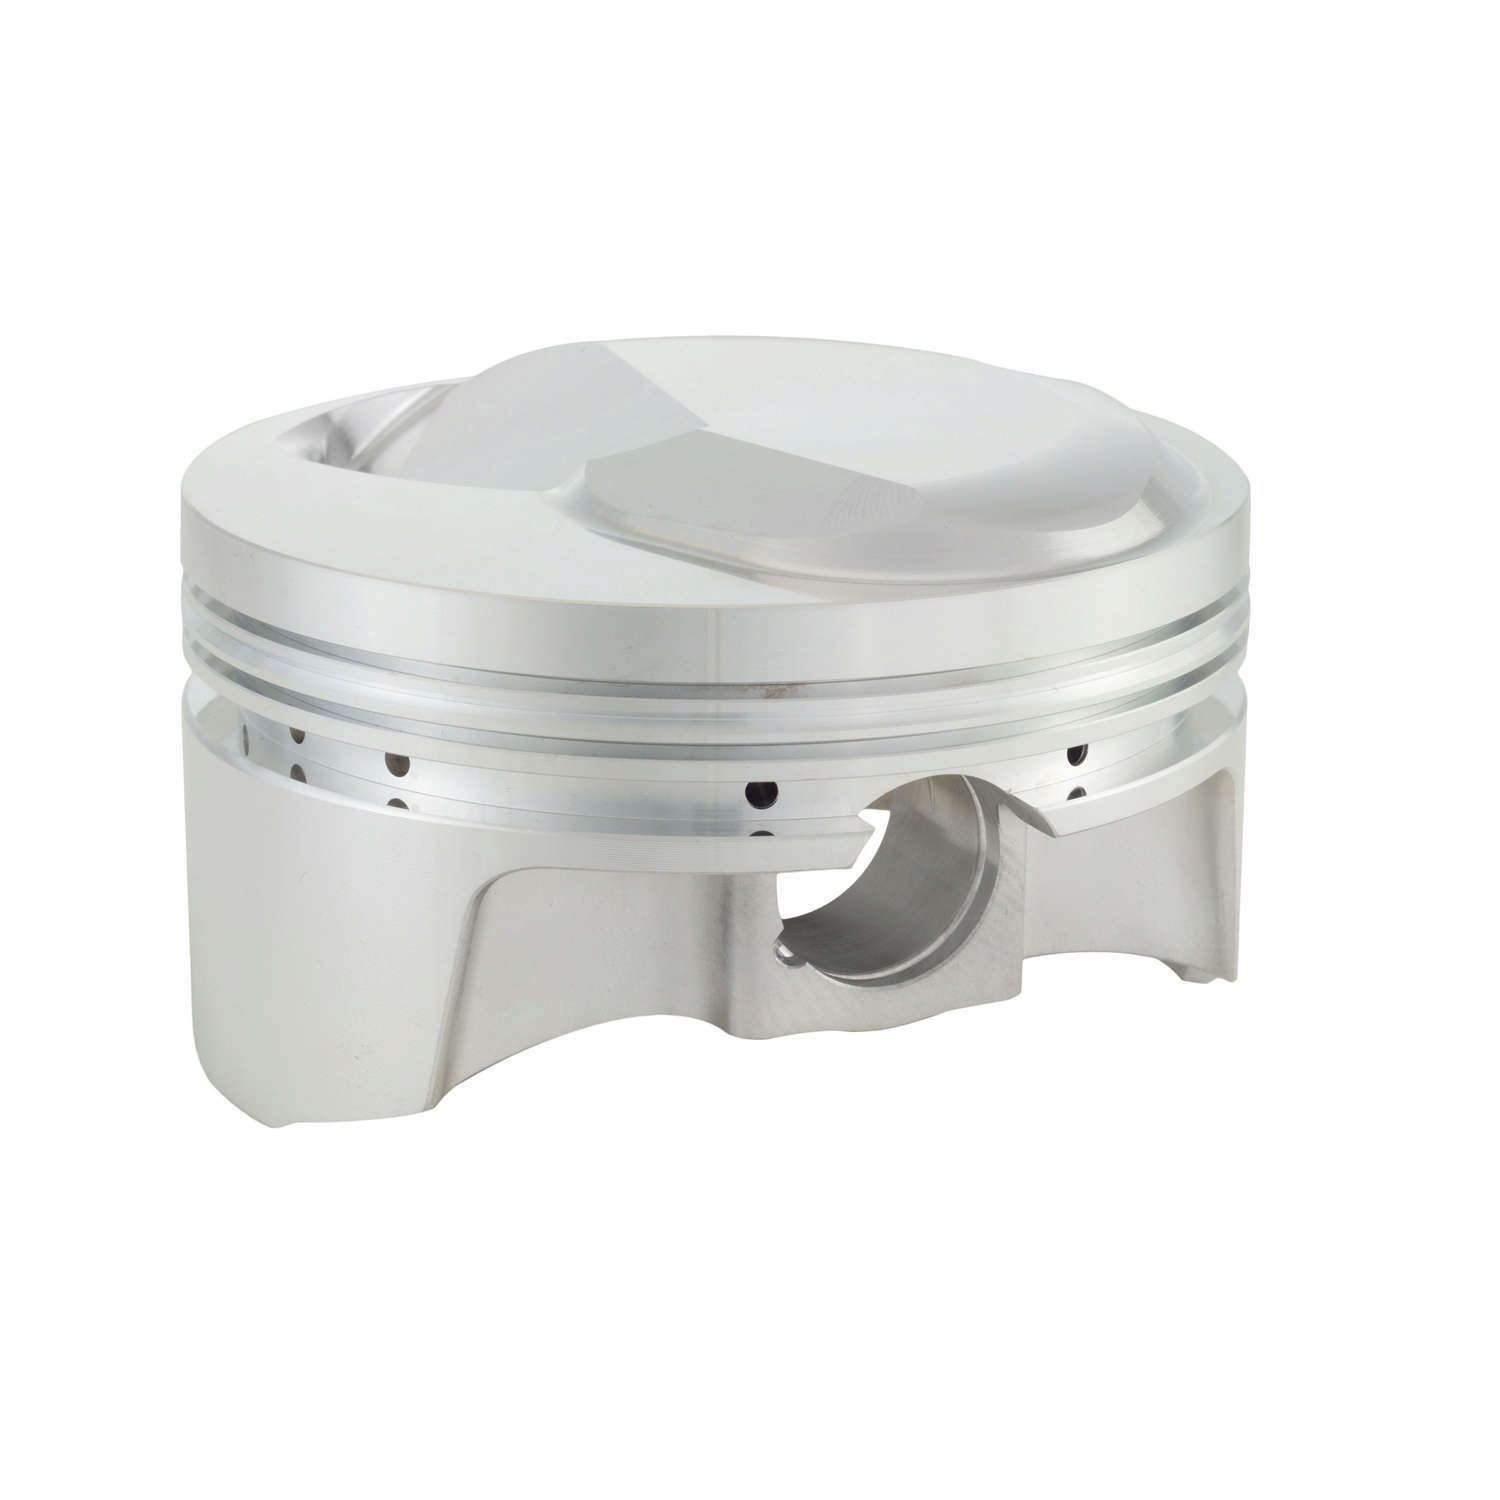 Bullet Pistons BBC5110-060-8 Piston and Ring, Forged, 4.310 in Bore, 1/16 x 1/16 x 3/16 in Ring Grooves, Plus 24.4 cc, Big Block Chevy, Kit